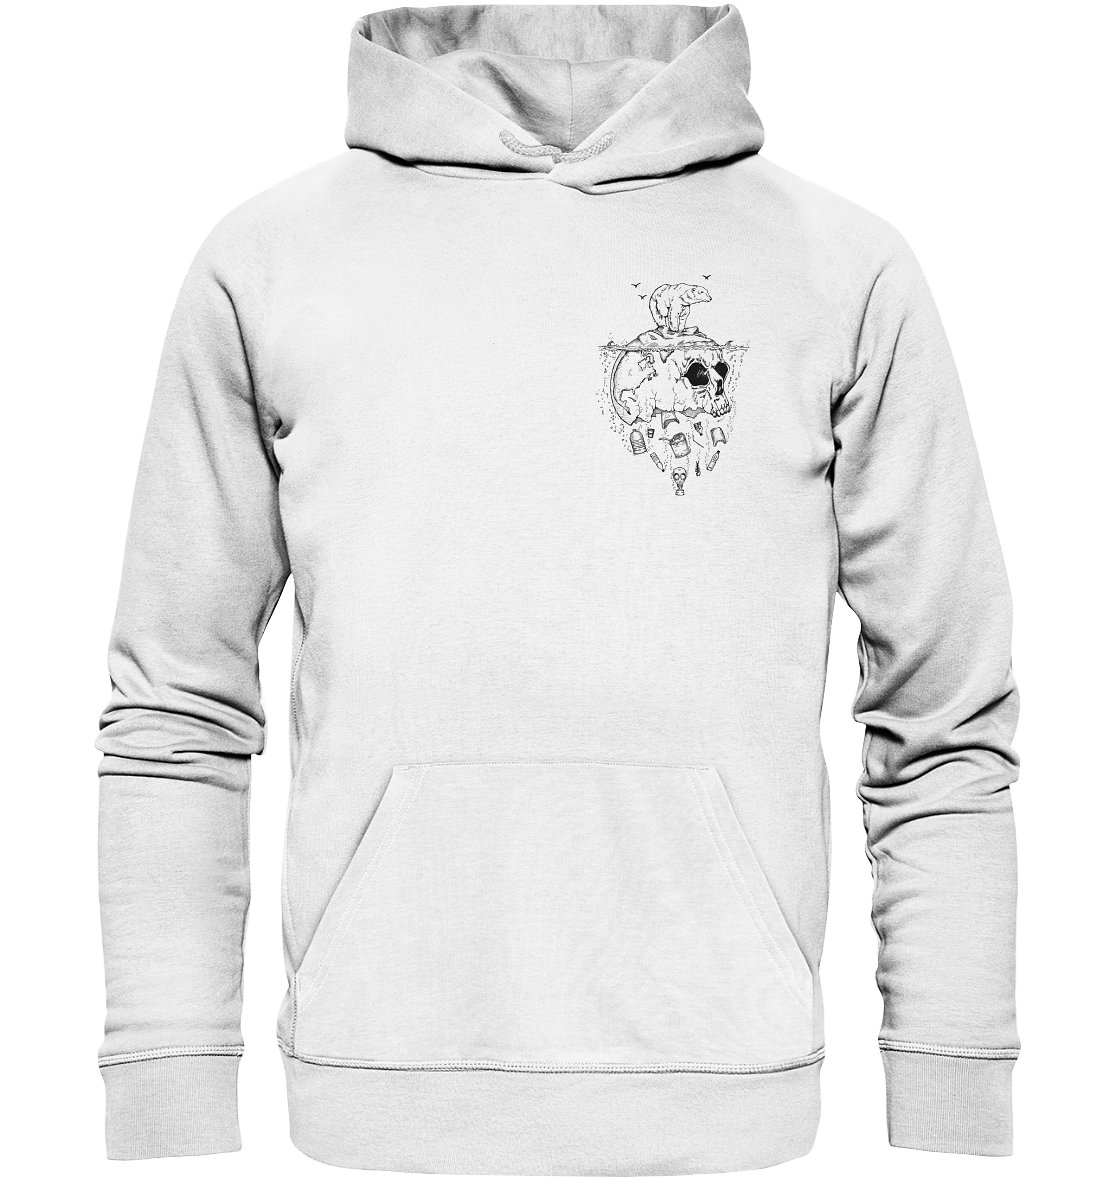 front-organic-hoodie-f8f8f8-1116x-20.png